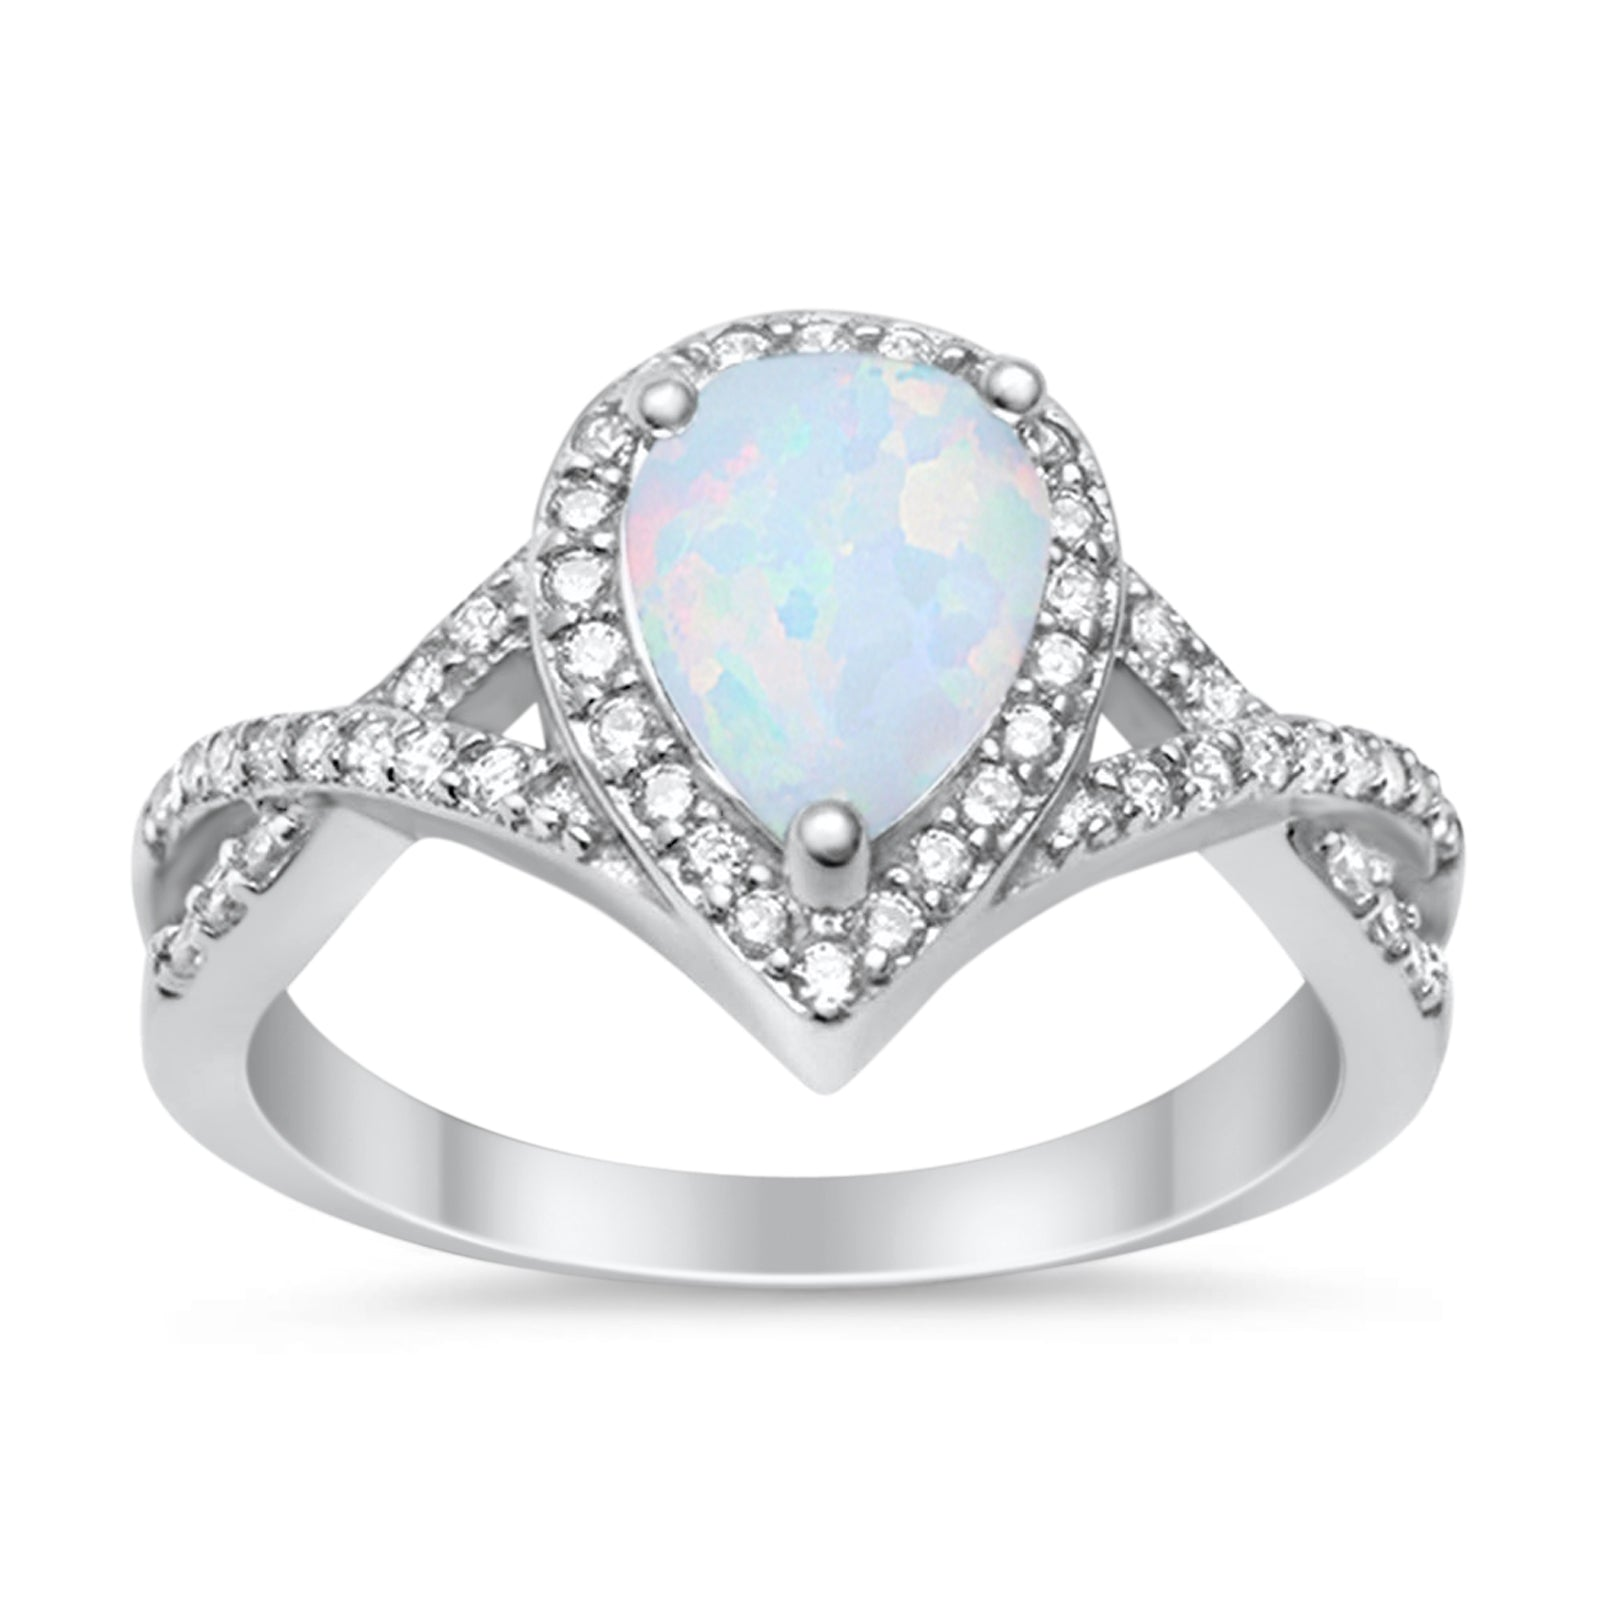 Teardrop Wedding Promise Ring Infinity Round Lab Created White Opal 925 Sterling Silver